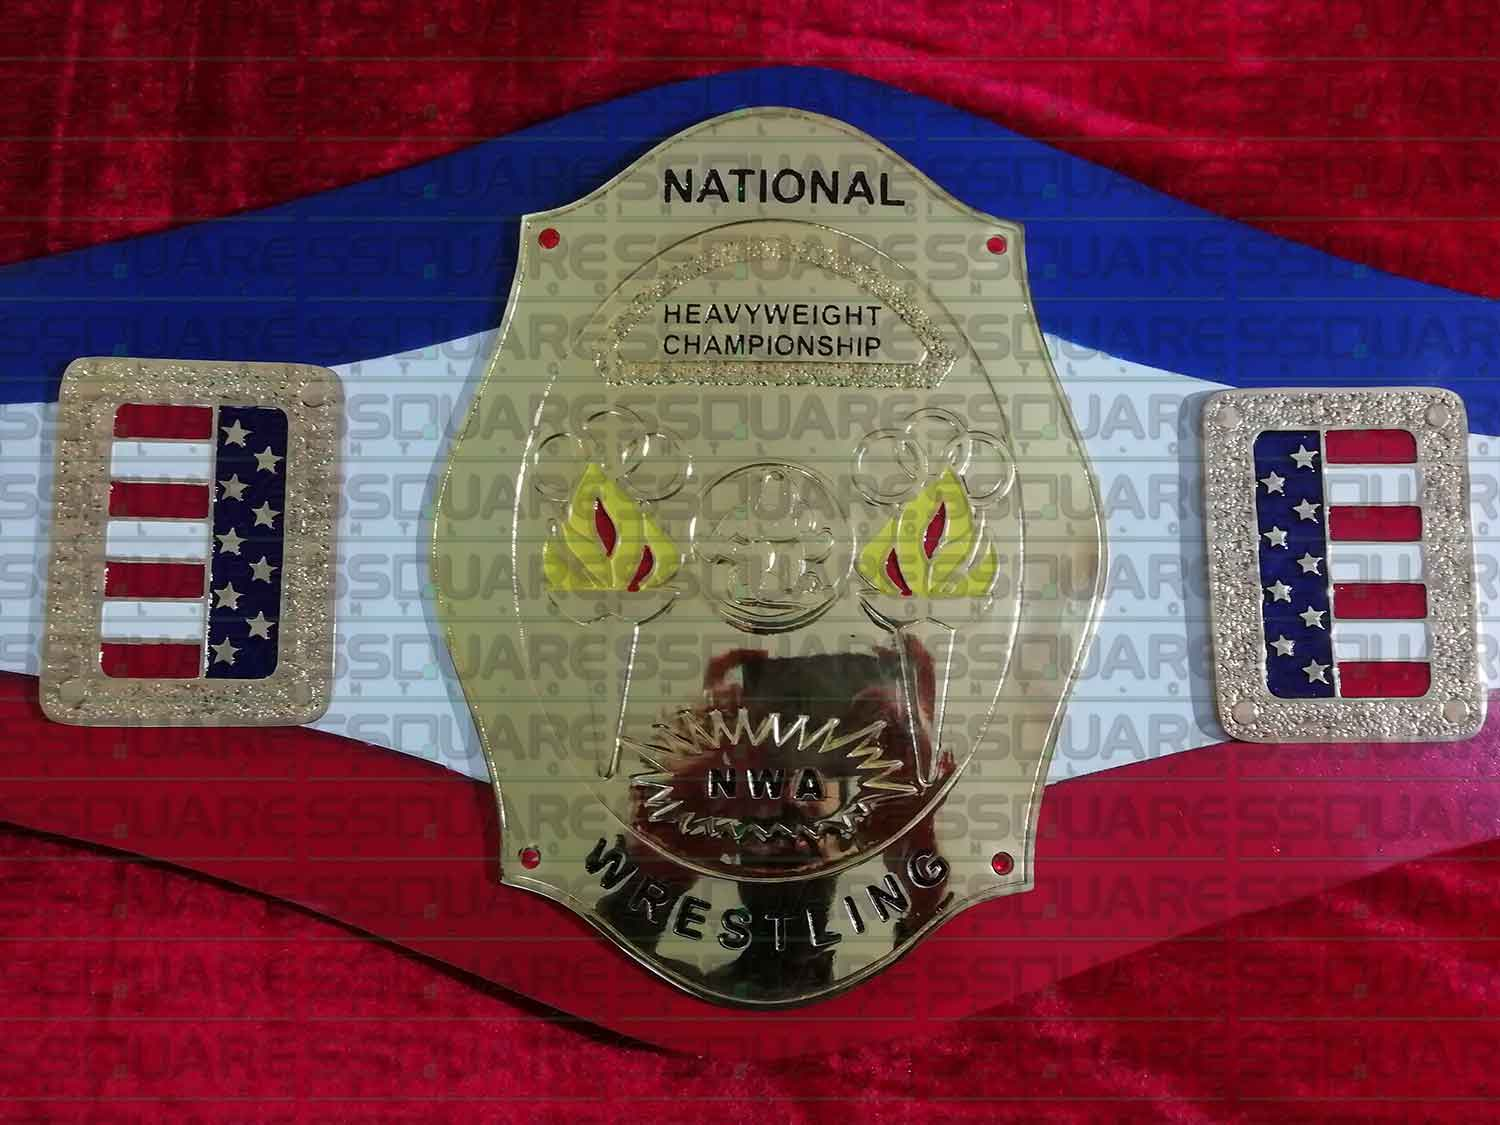 NWA National Heavyweight Wrestling Champion replica belt